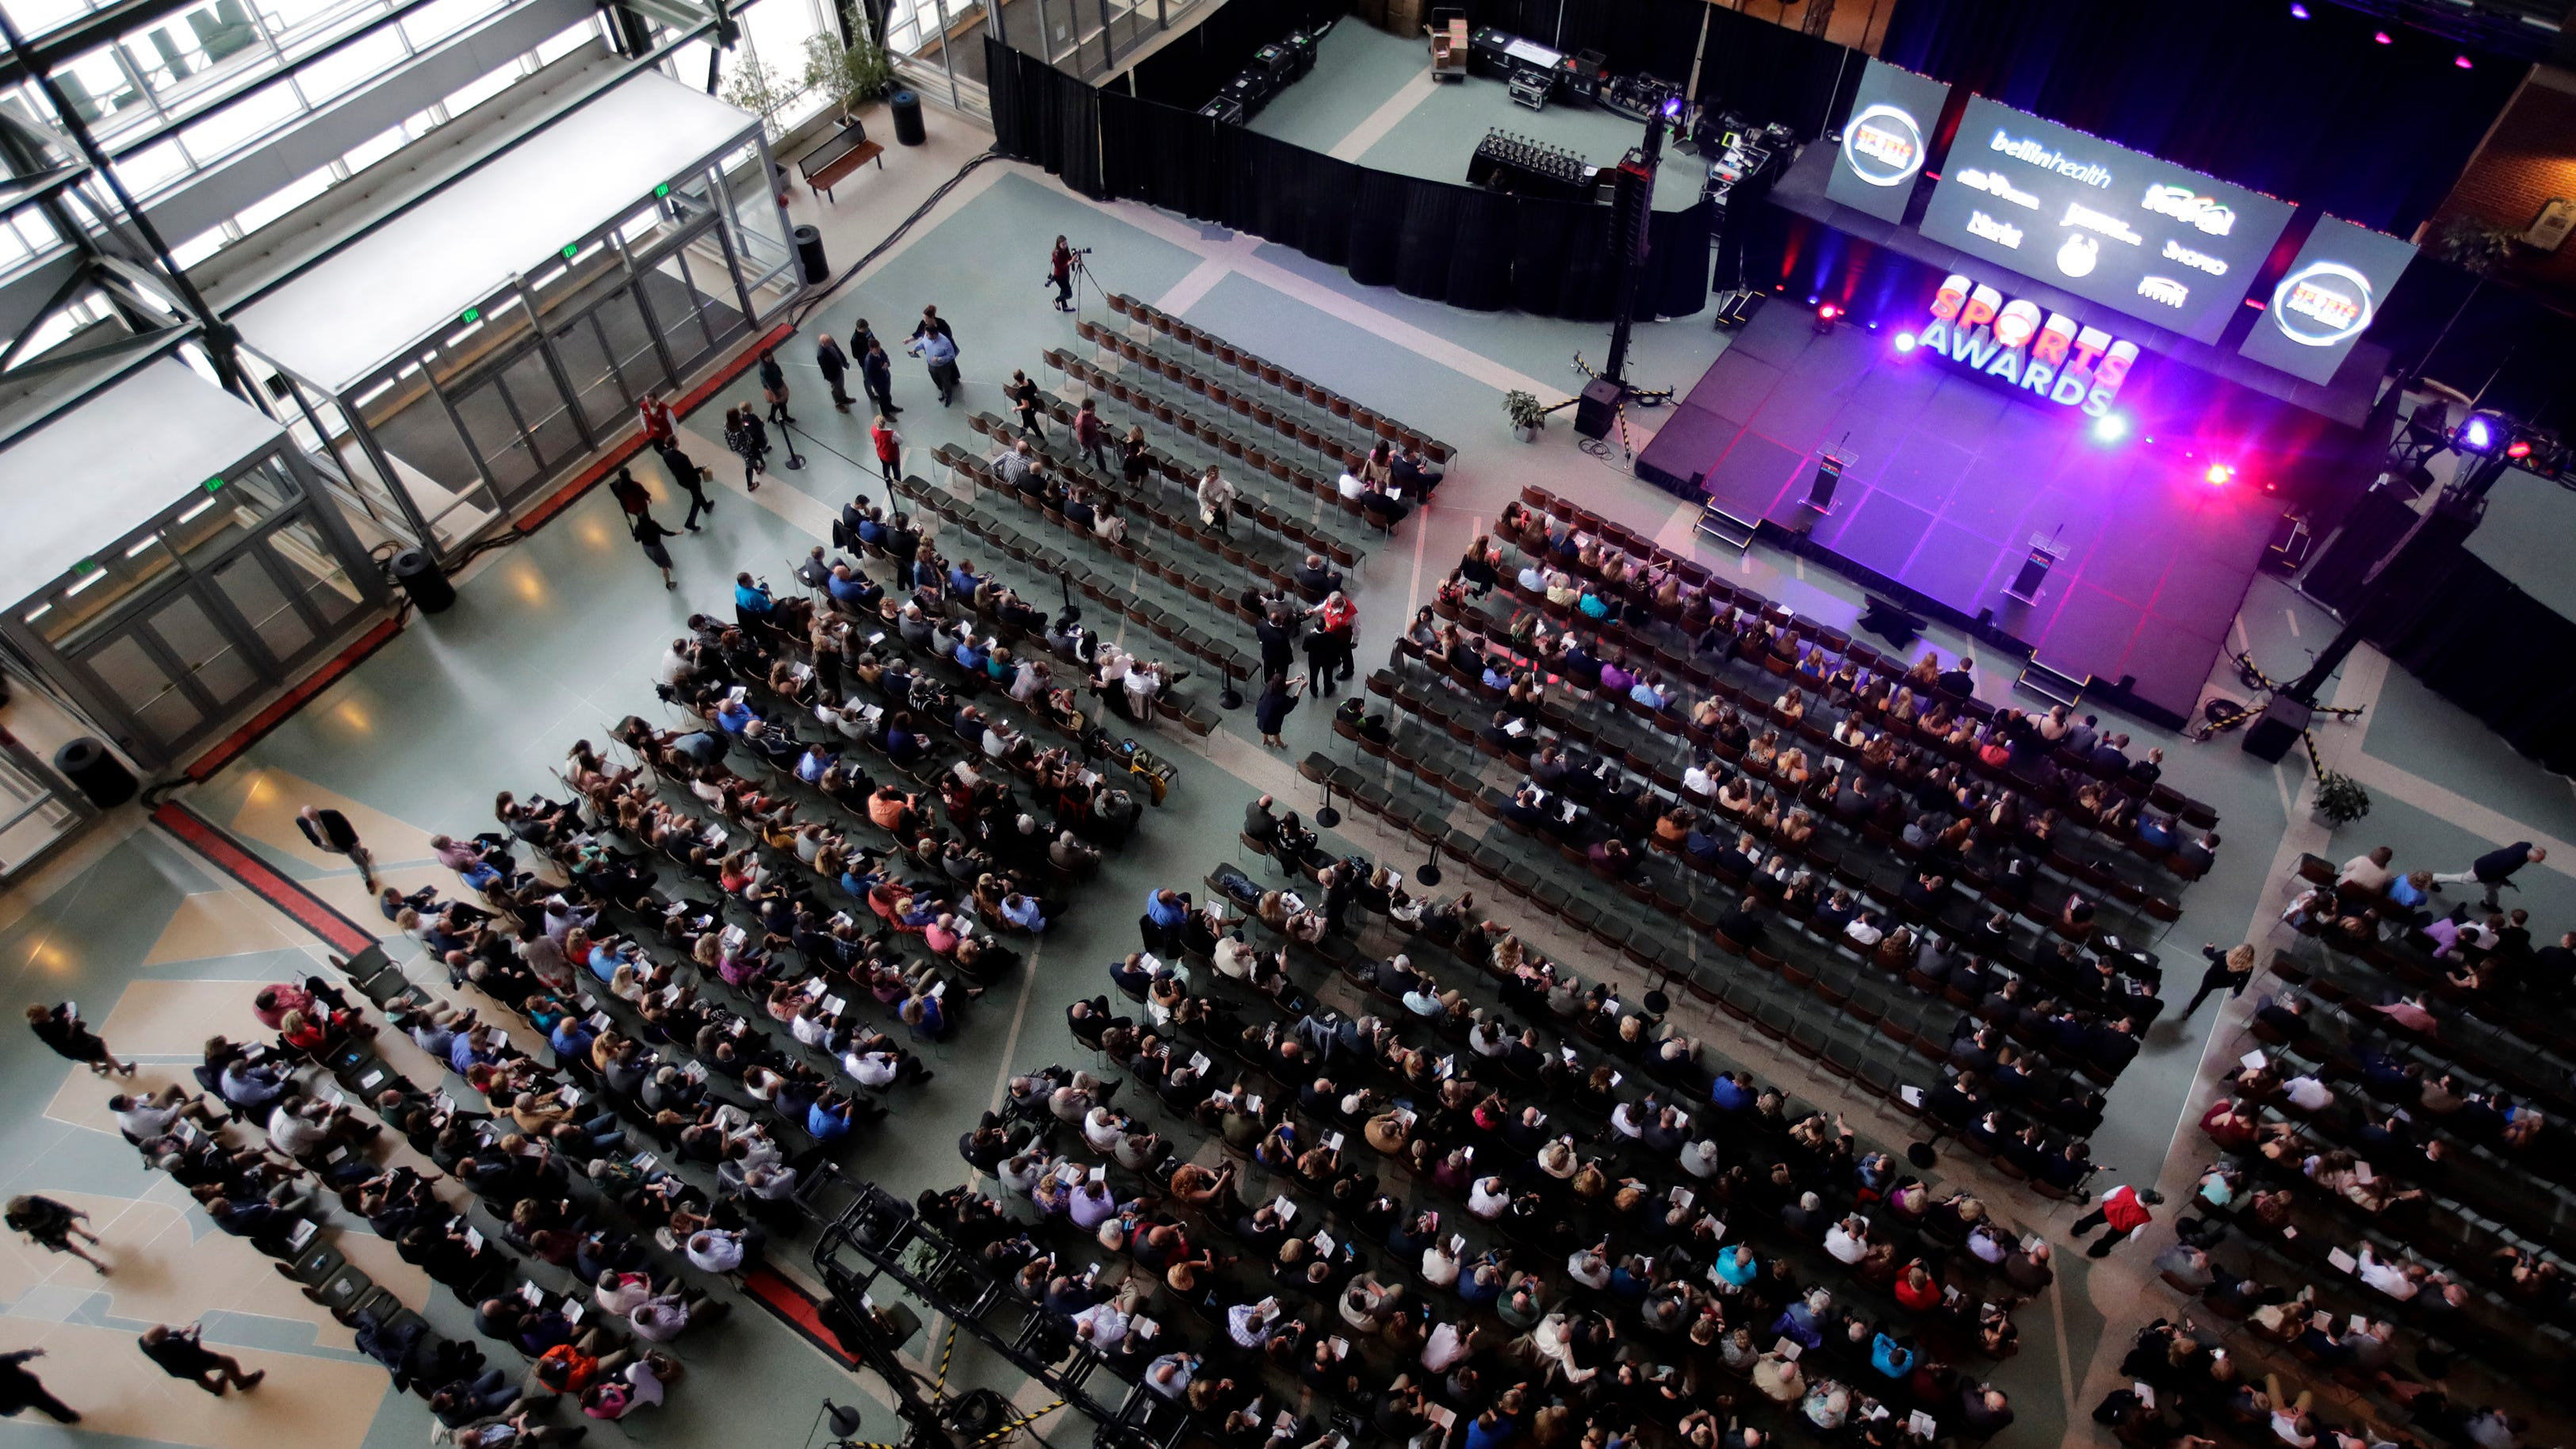 People gather inside the Lambeau Field Atrium in Green Bay for the 2018 Wisconsin High School Sports Awards show. The 2019 show will be held May 8 at the Fox Cities Performing Arts Center in Appleton.